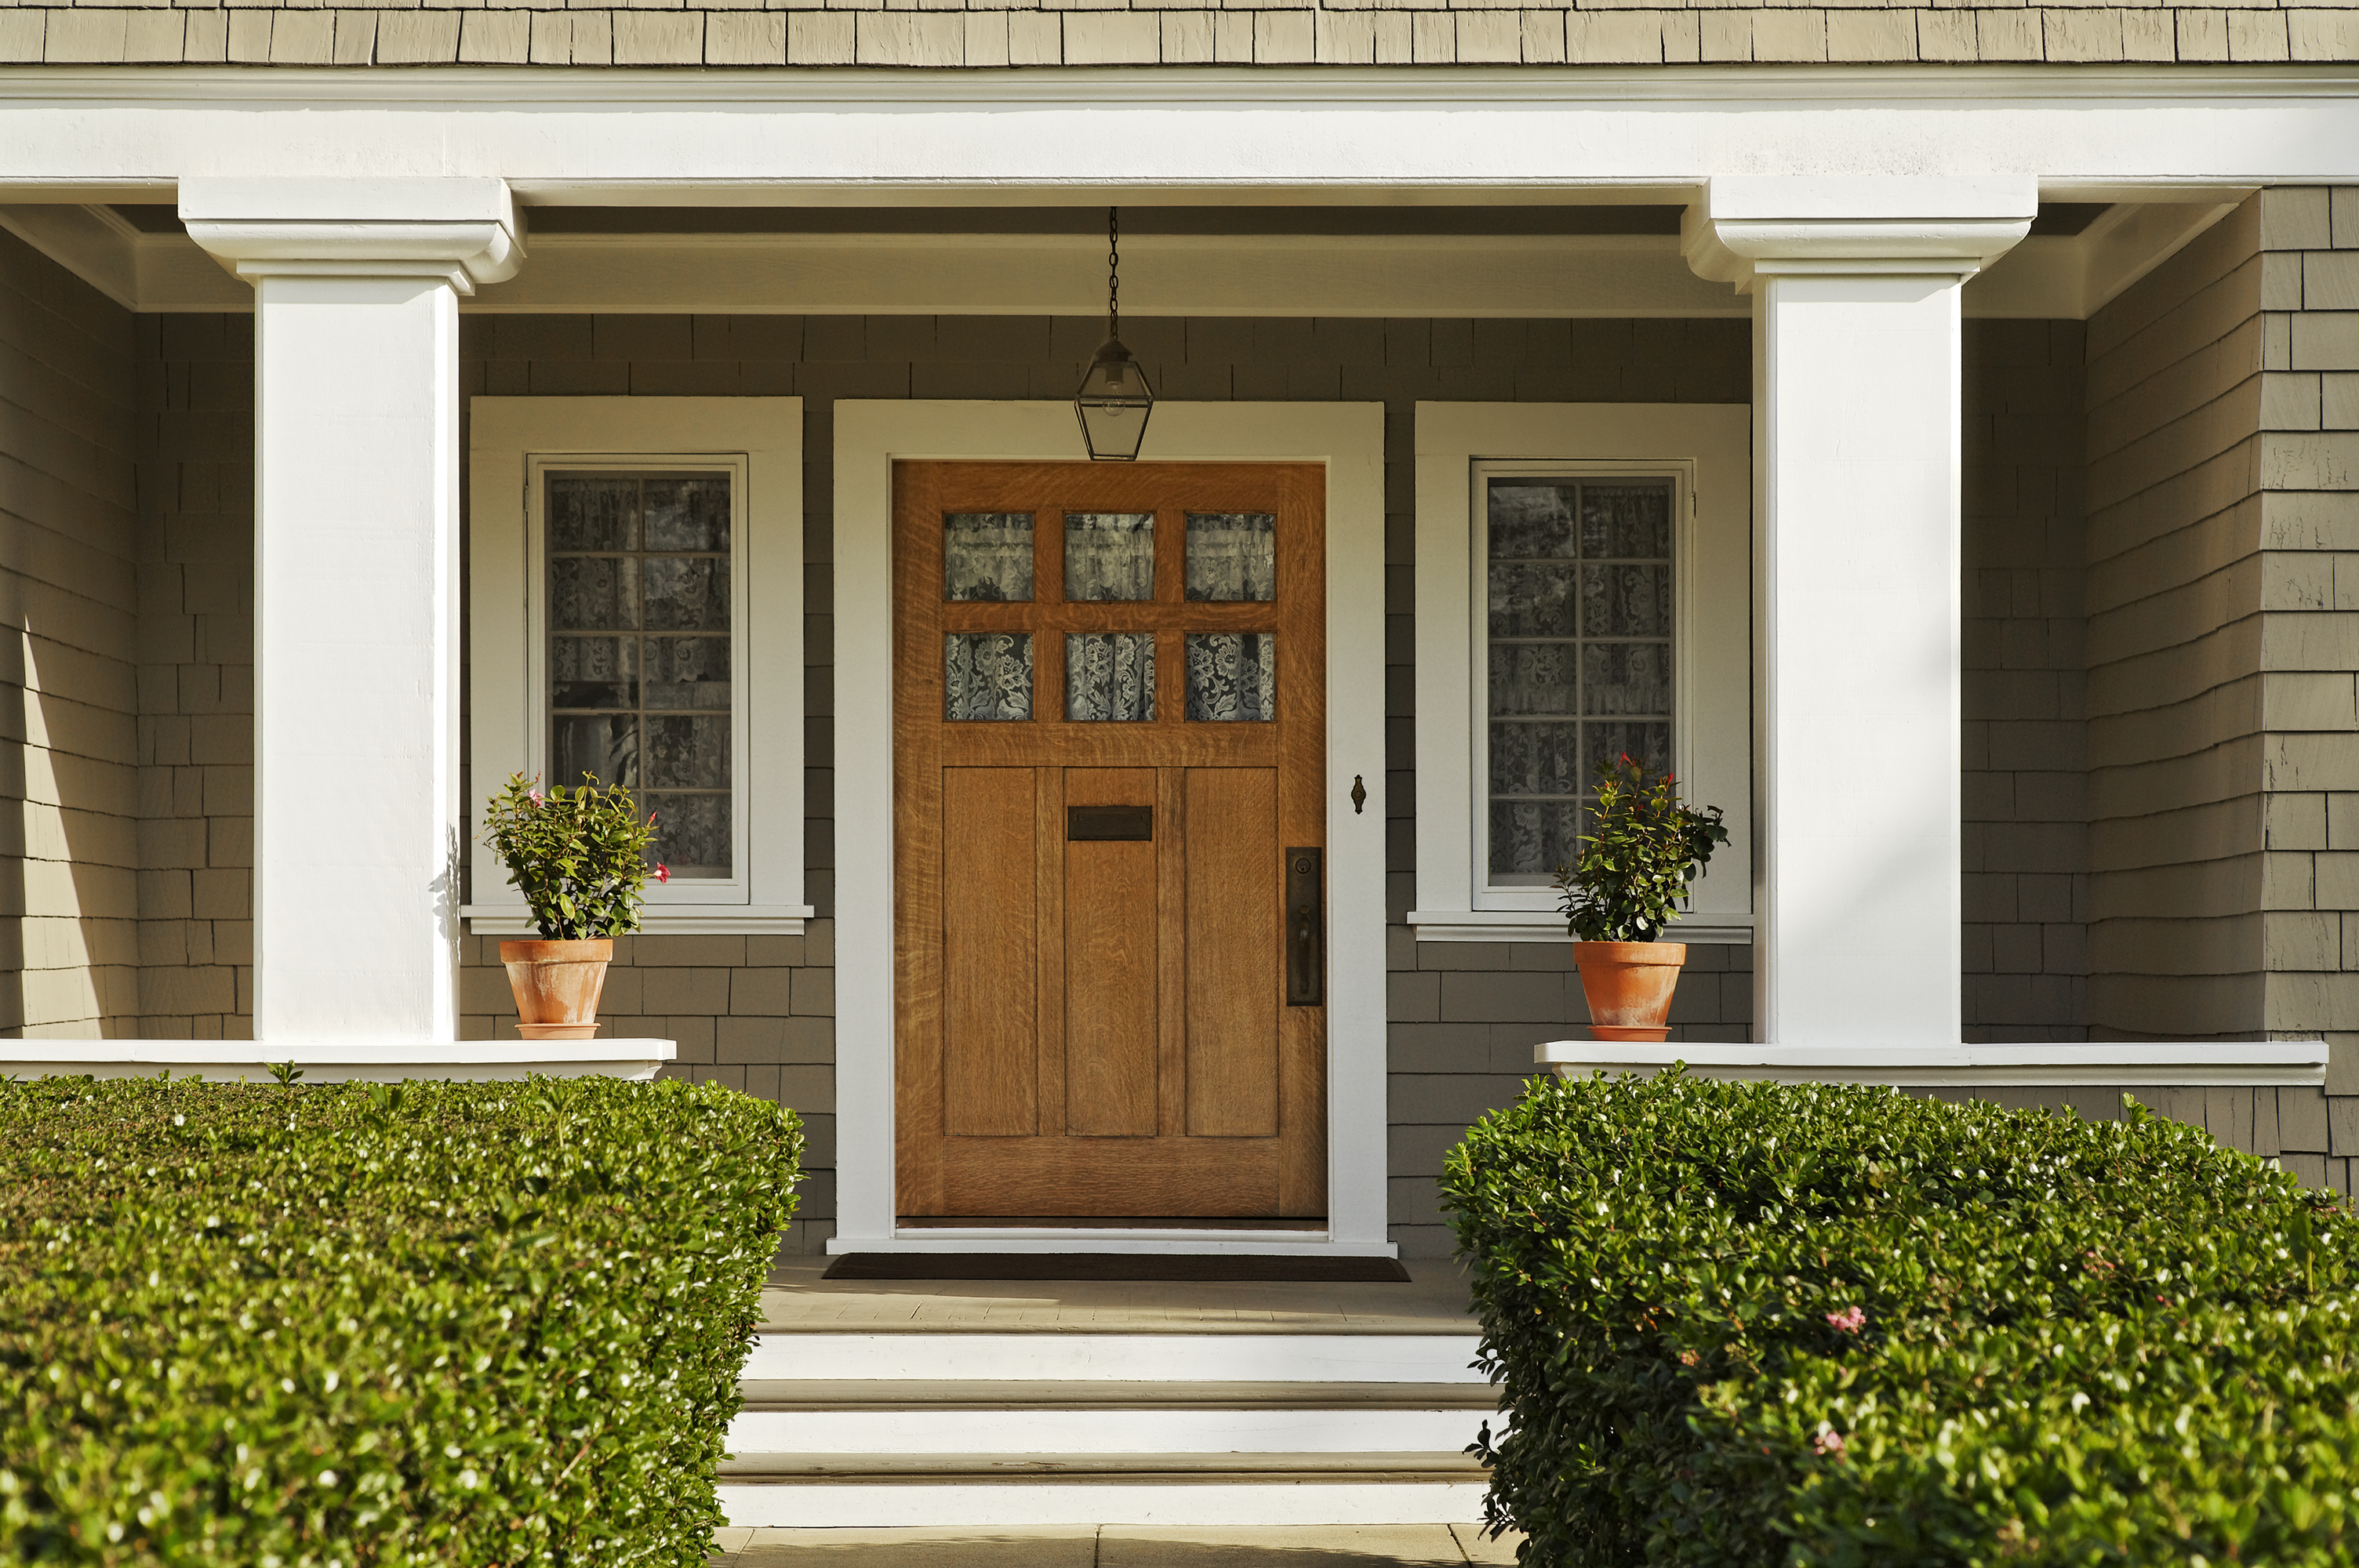 Garage front door contractor hanover york gettysburg pa for Front door entrance designs for houses